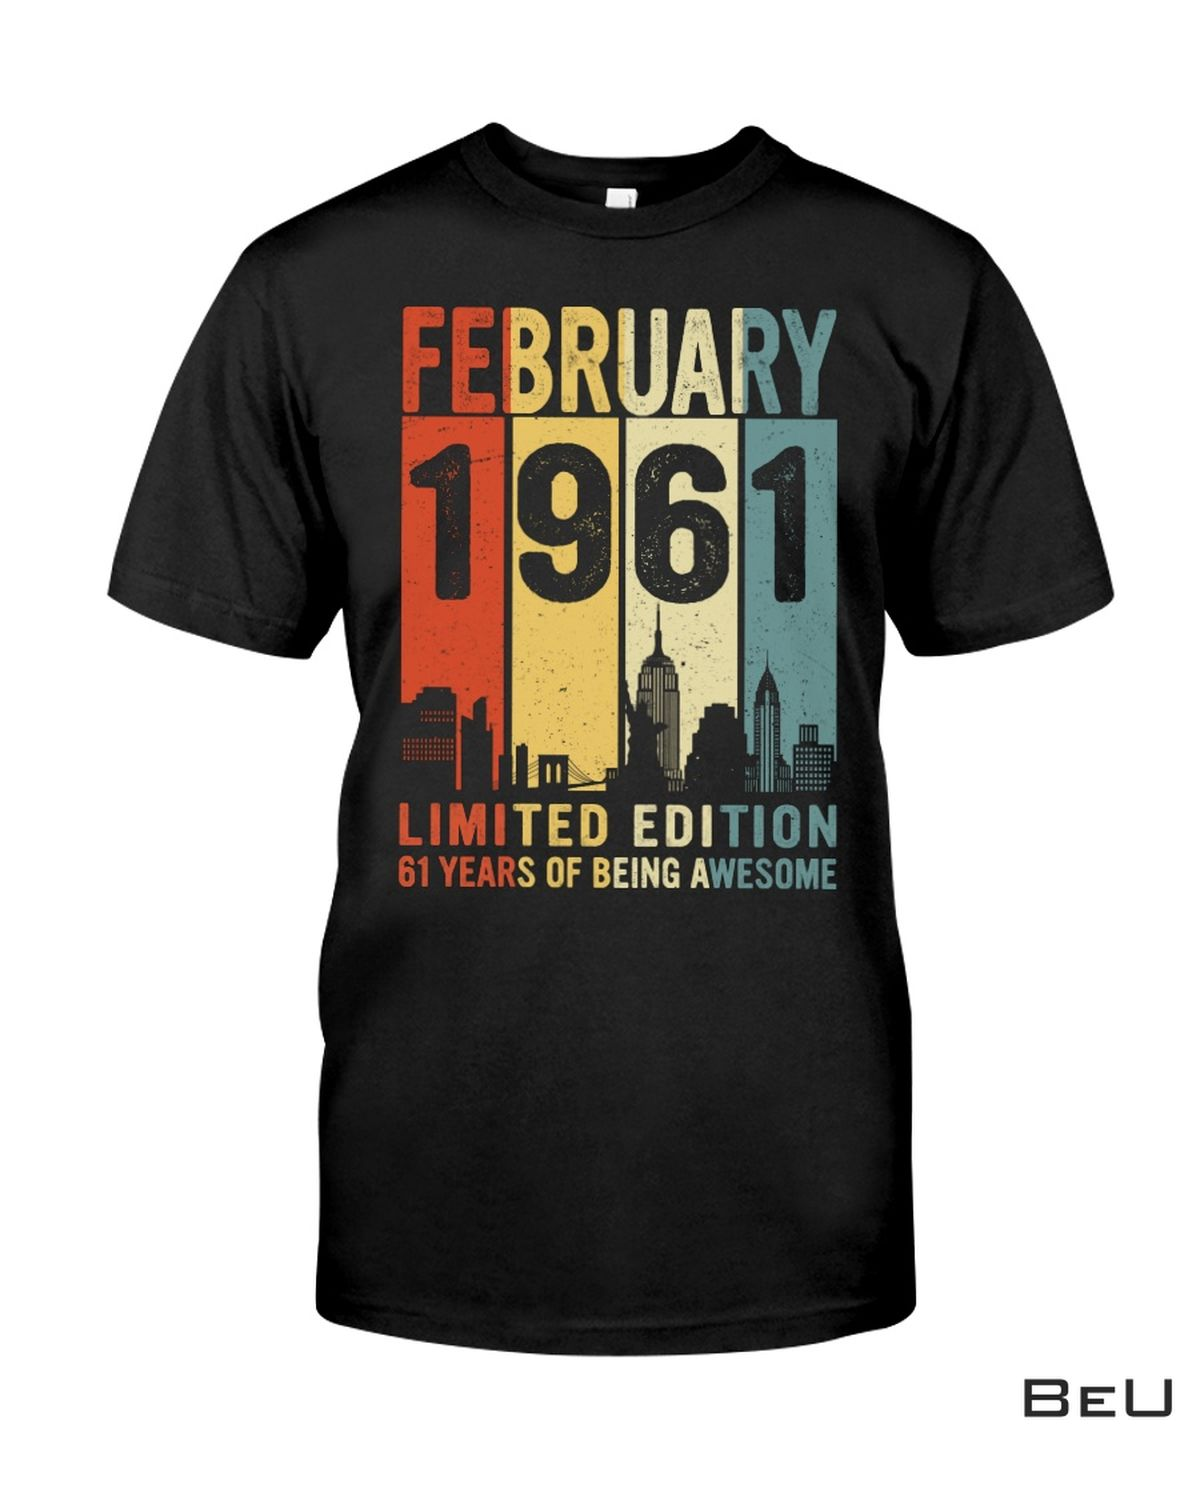 February 1961 Limited Edition Shirt